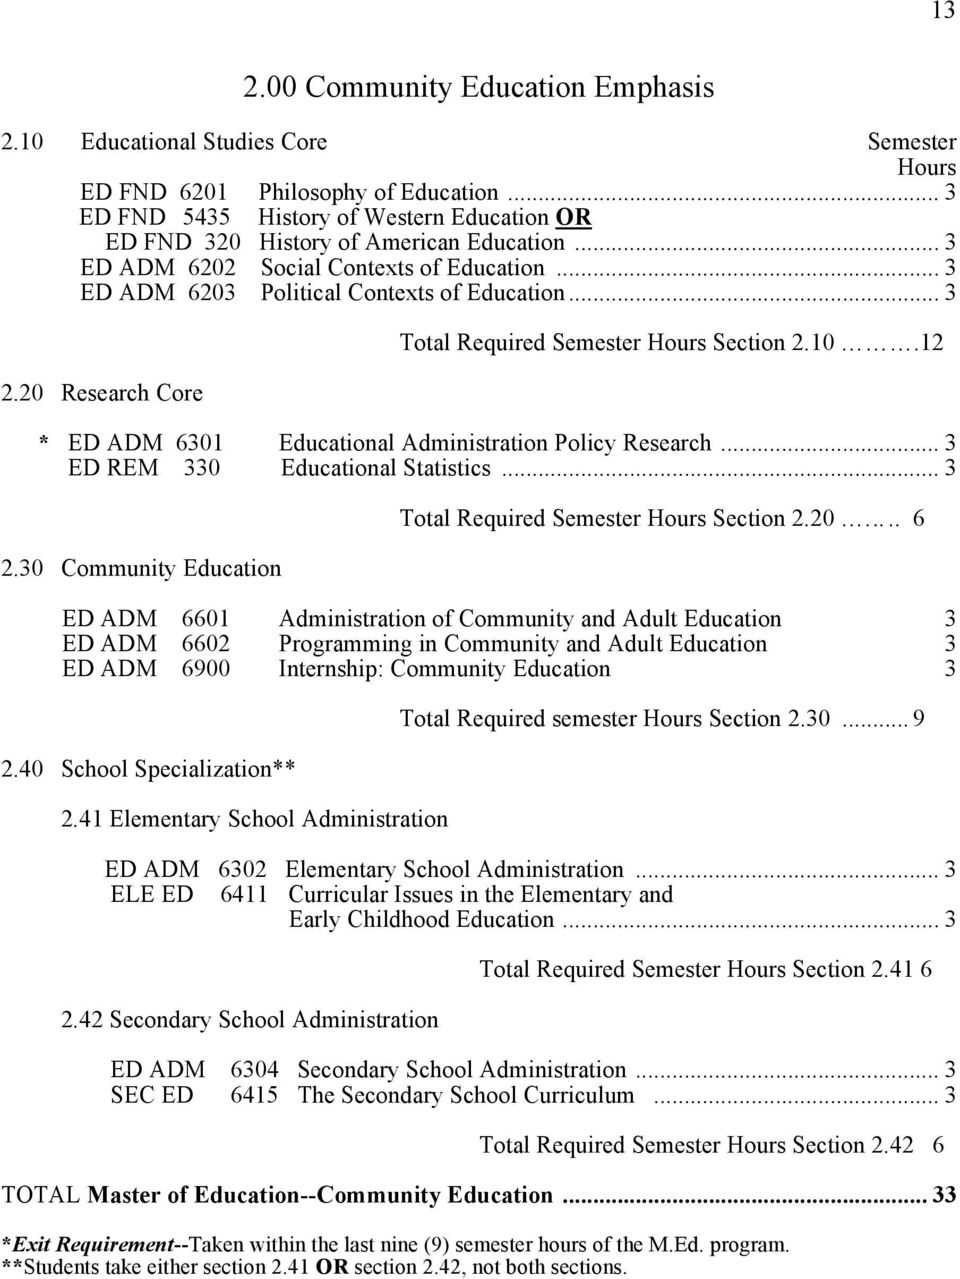 20 Research Core Total Required Semester Hours Section 2.10.12 * ED ADM 6301 Educational Administration Policy Research... 3 ED REM 330 Educational Statistics... 3 2.